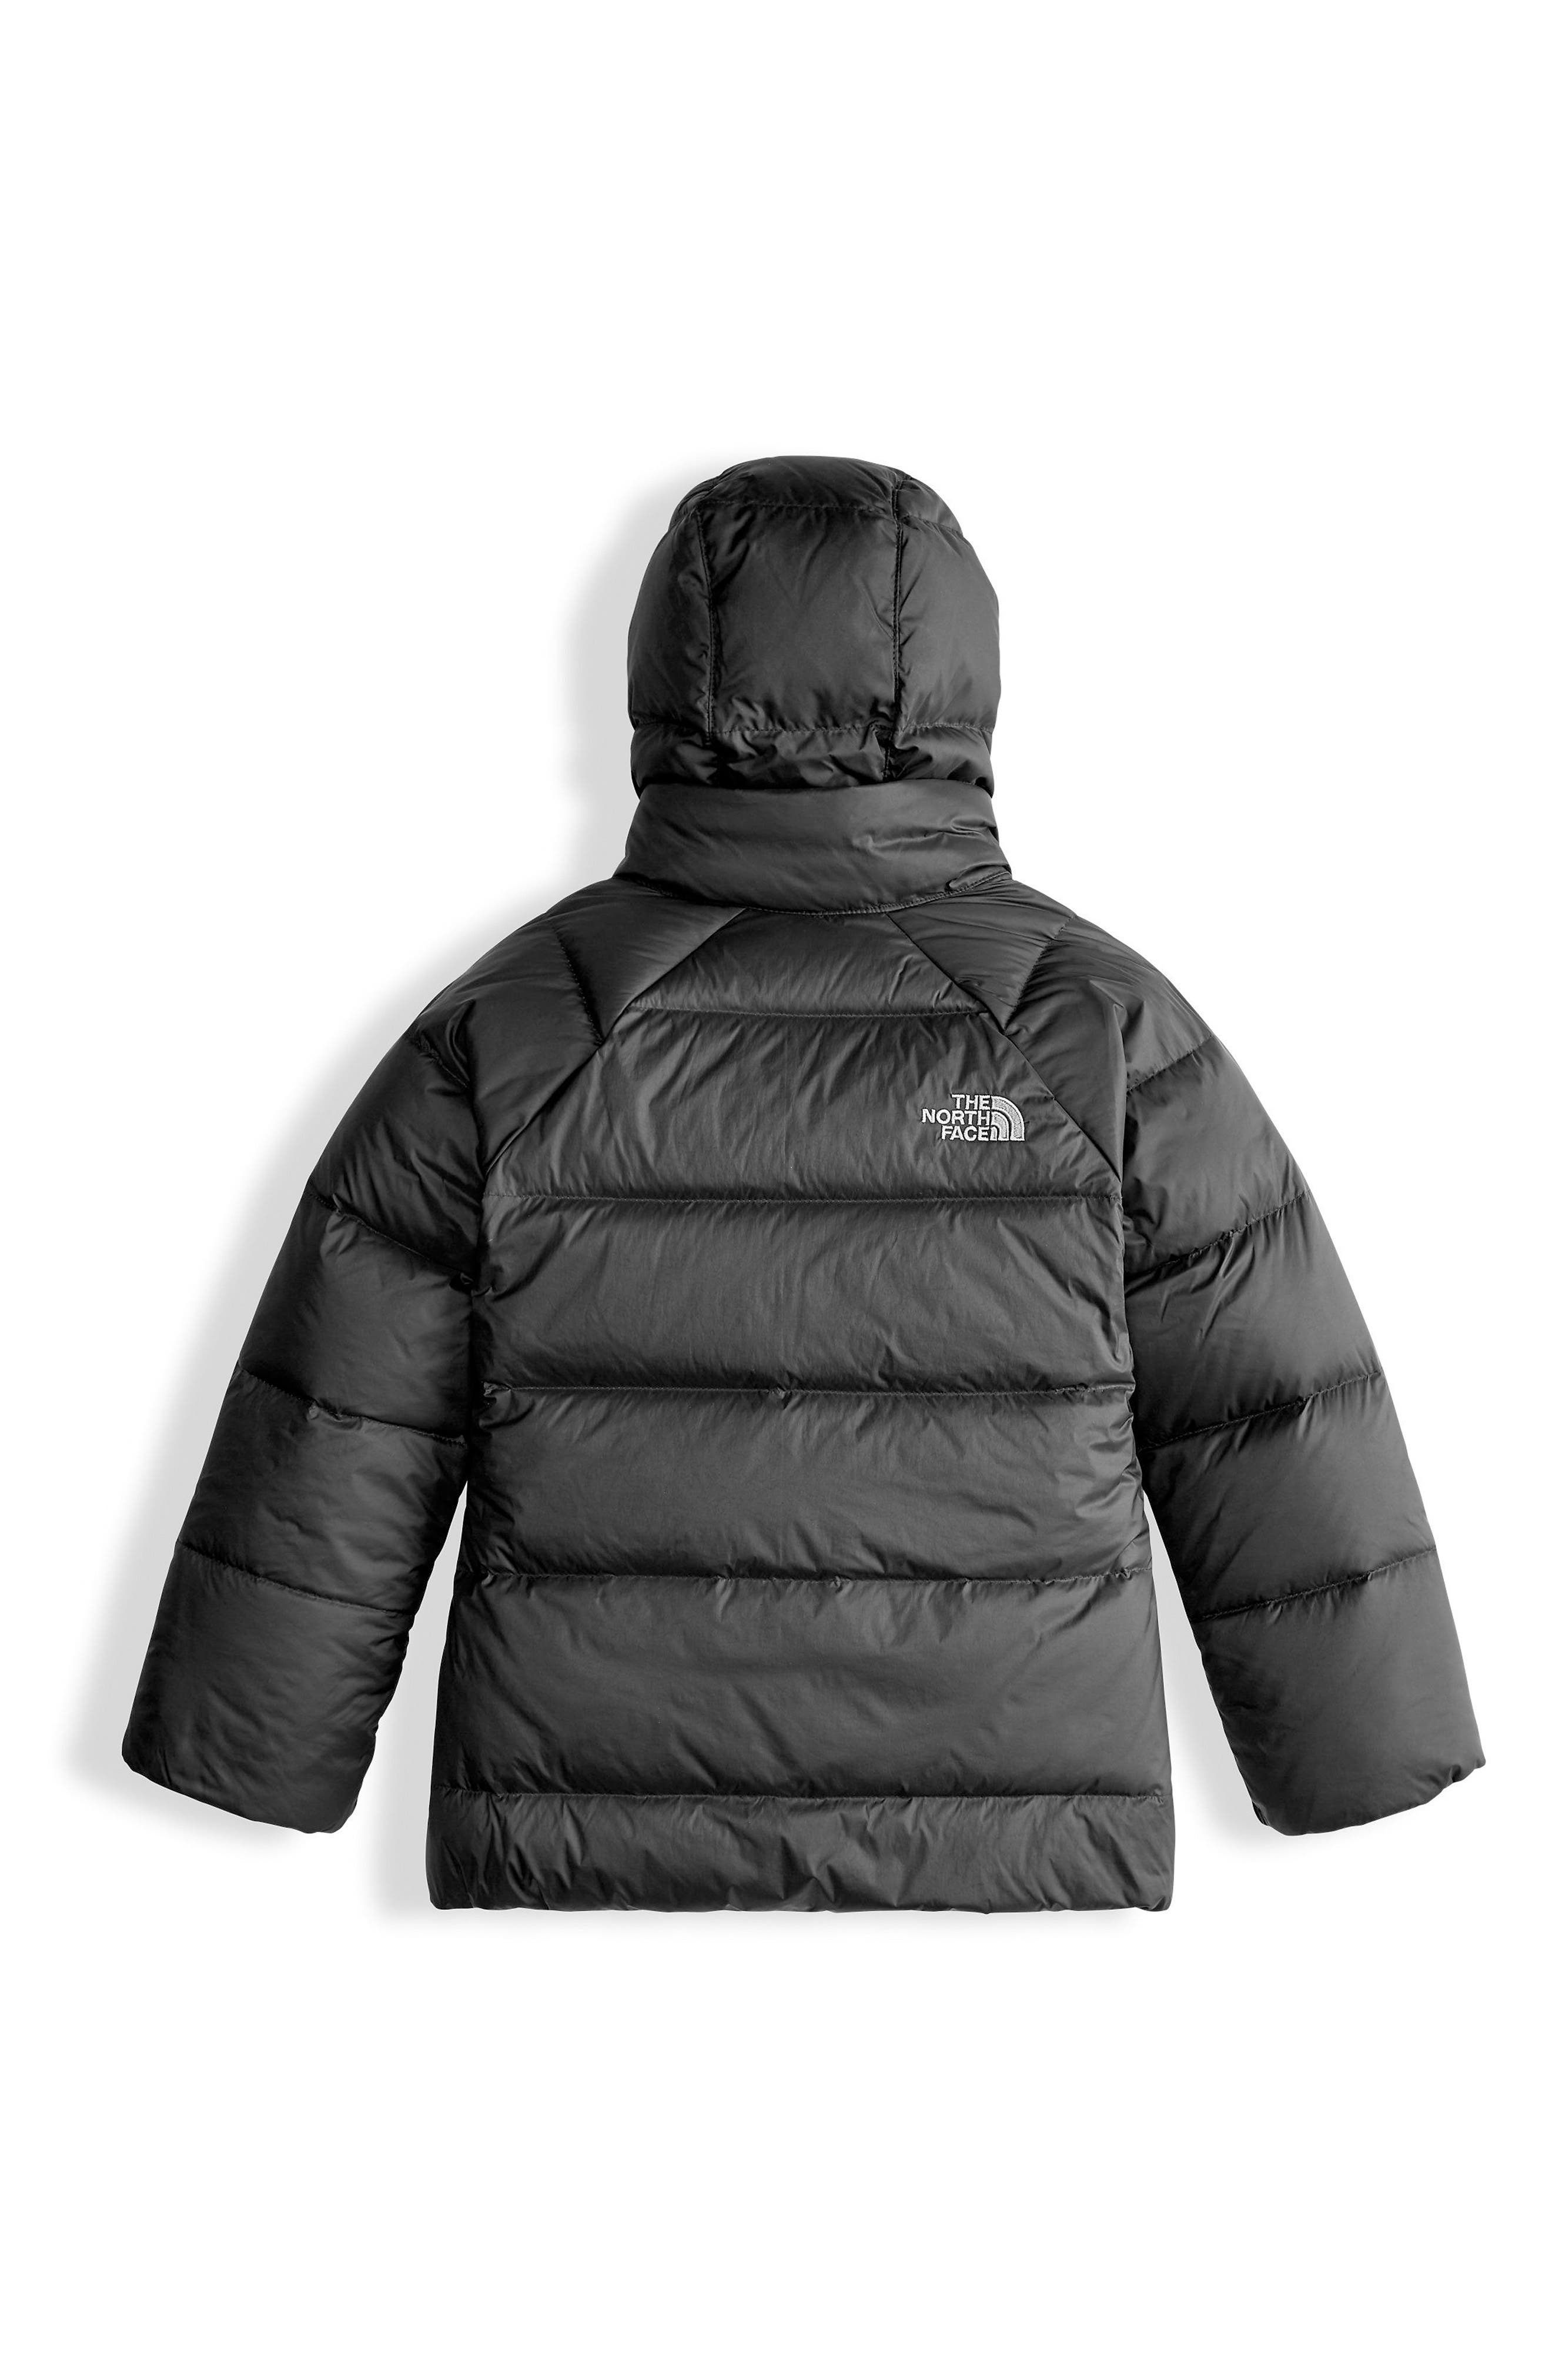 Double Down TriClimate<sup>®</sup> 3-in-1 Jacket,                             Alternate thumbnail 2, color,                             Tnf Black